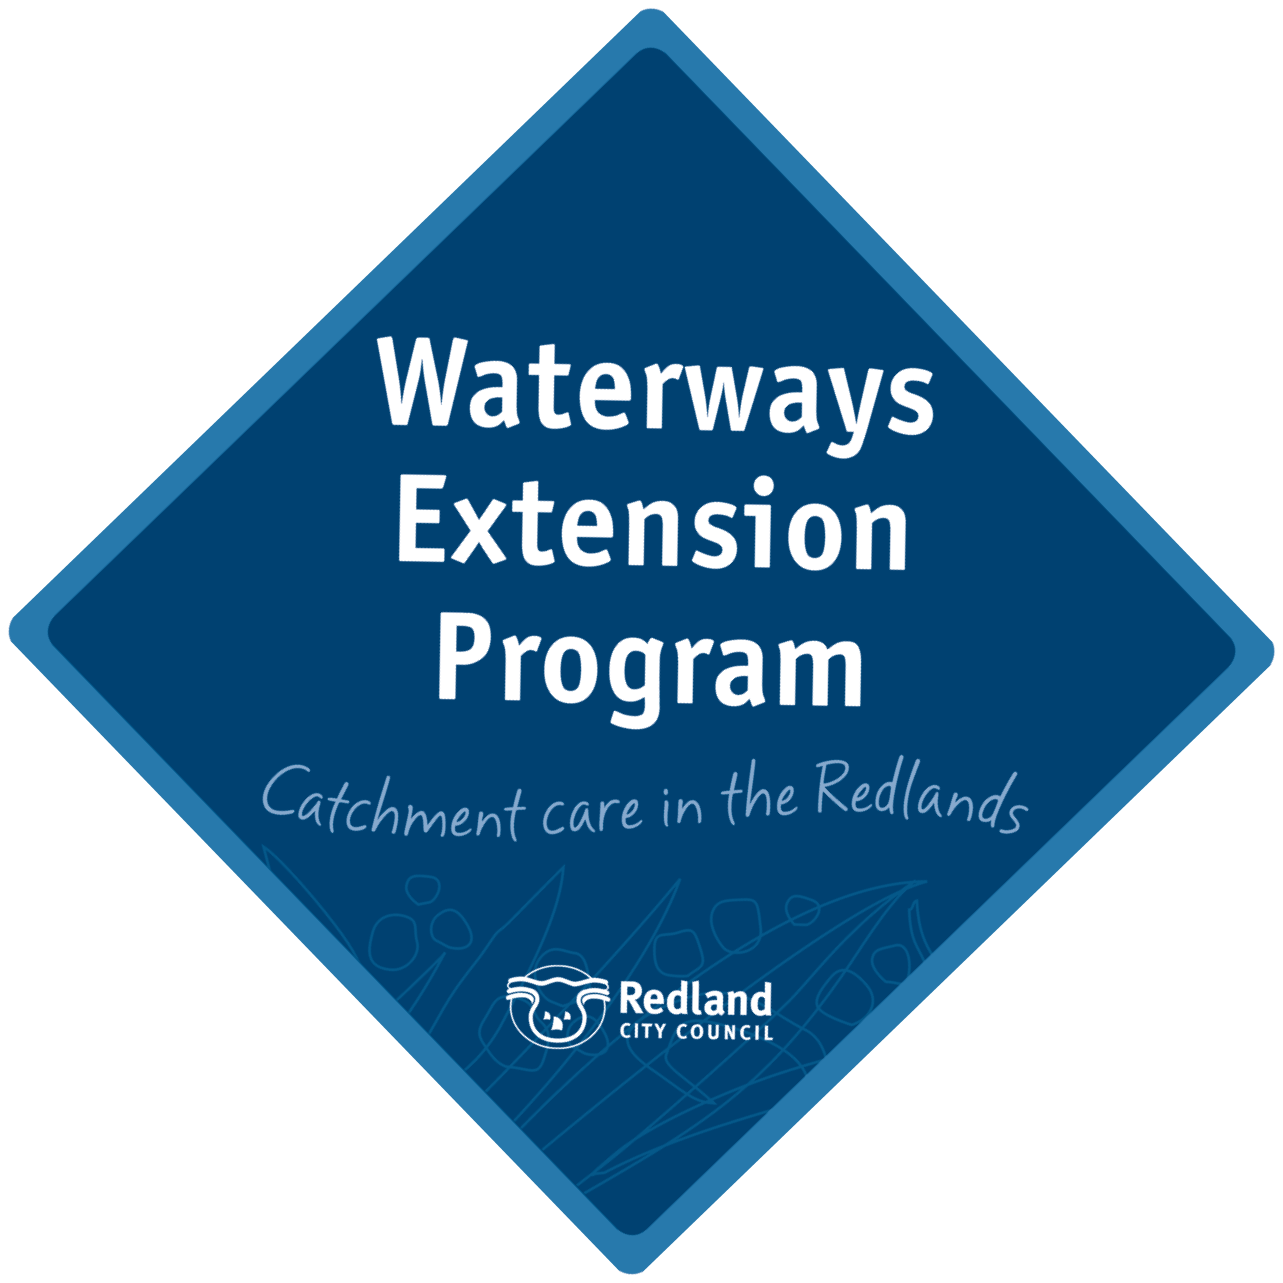 Environmental partnerships in the Redlands - Waterways Extension Program